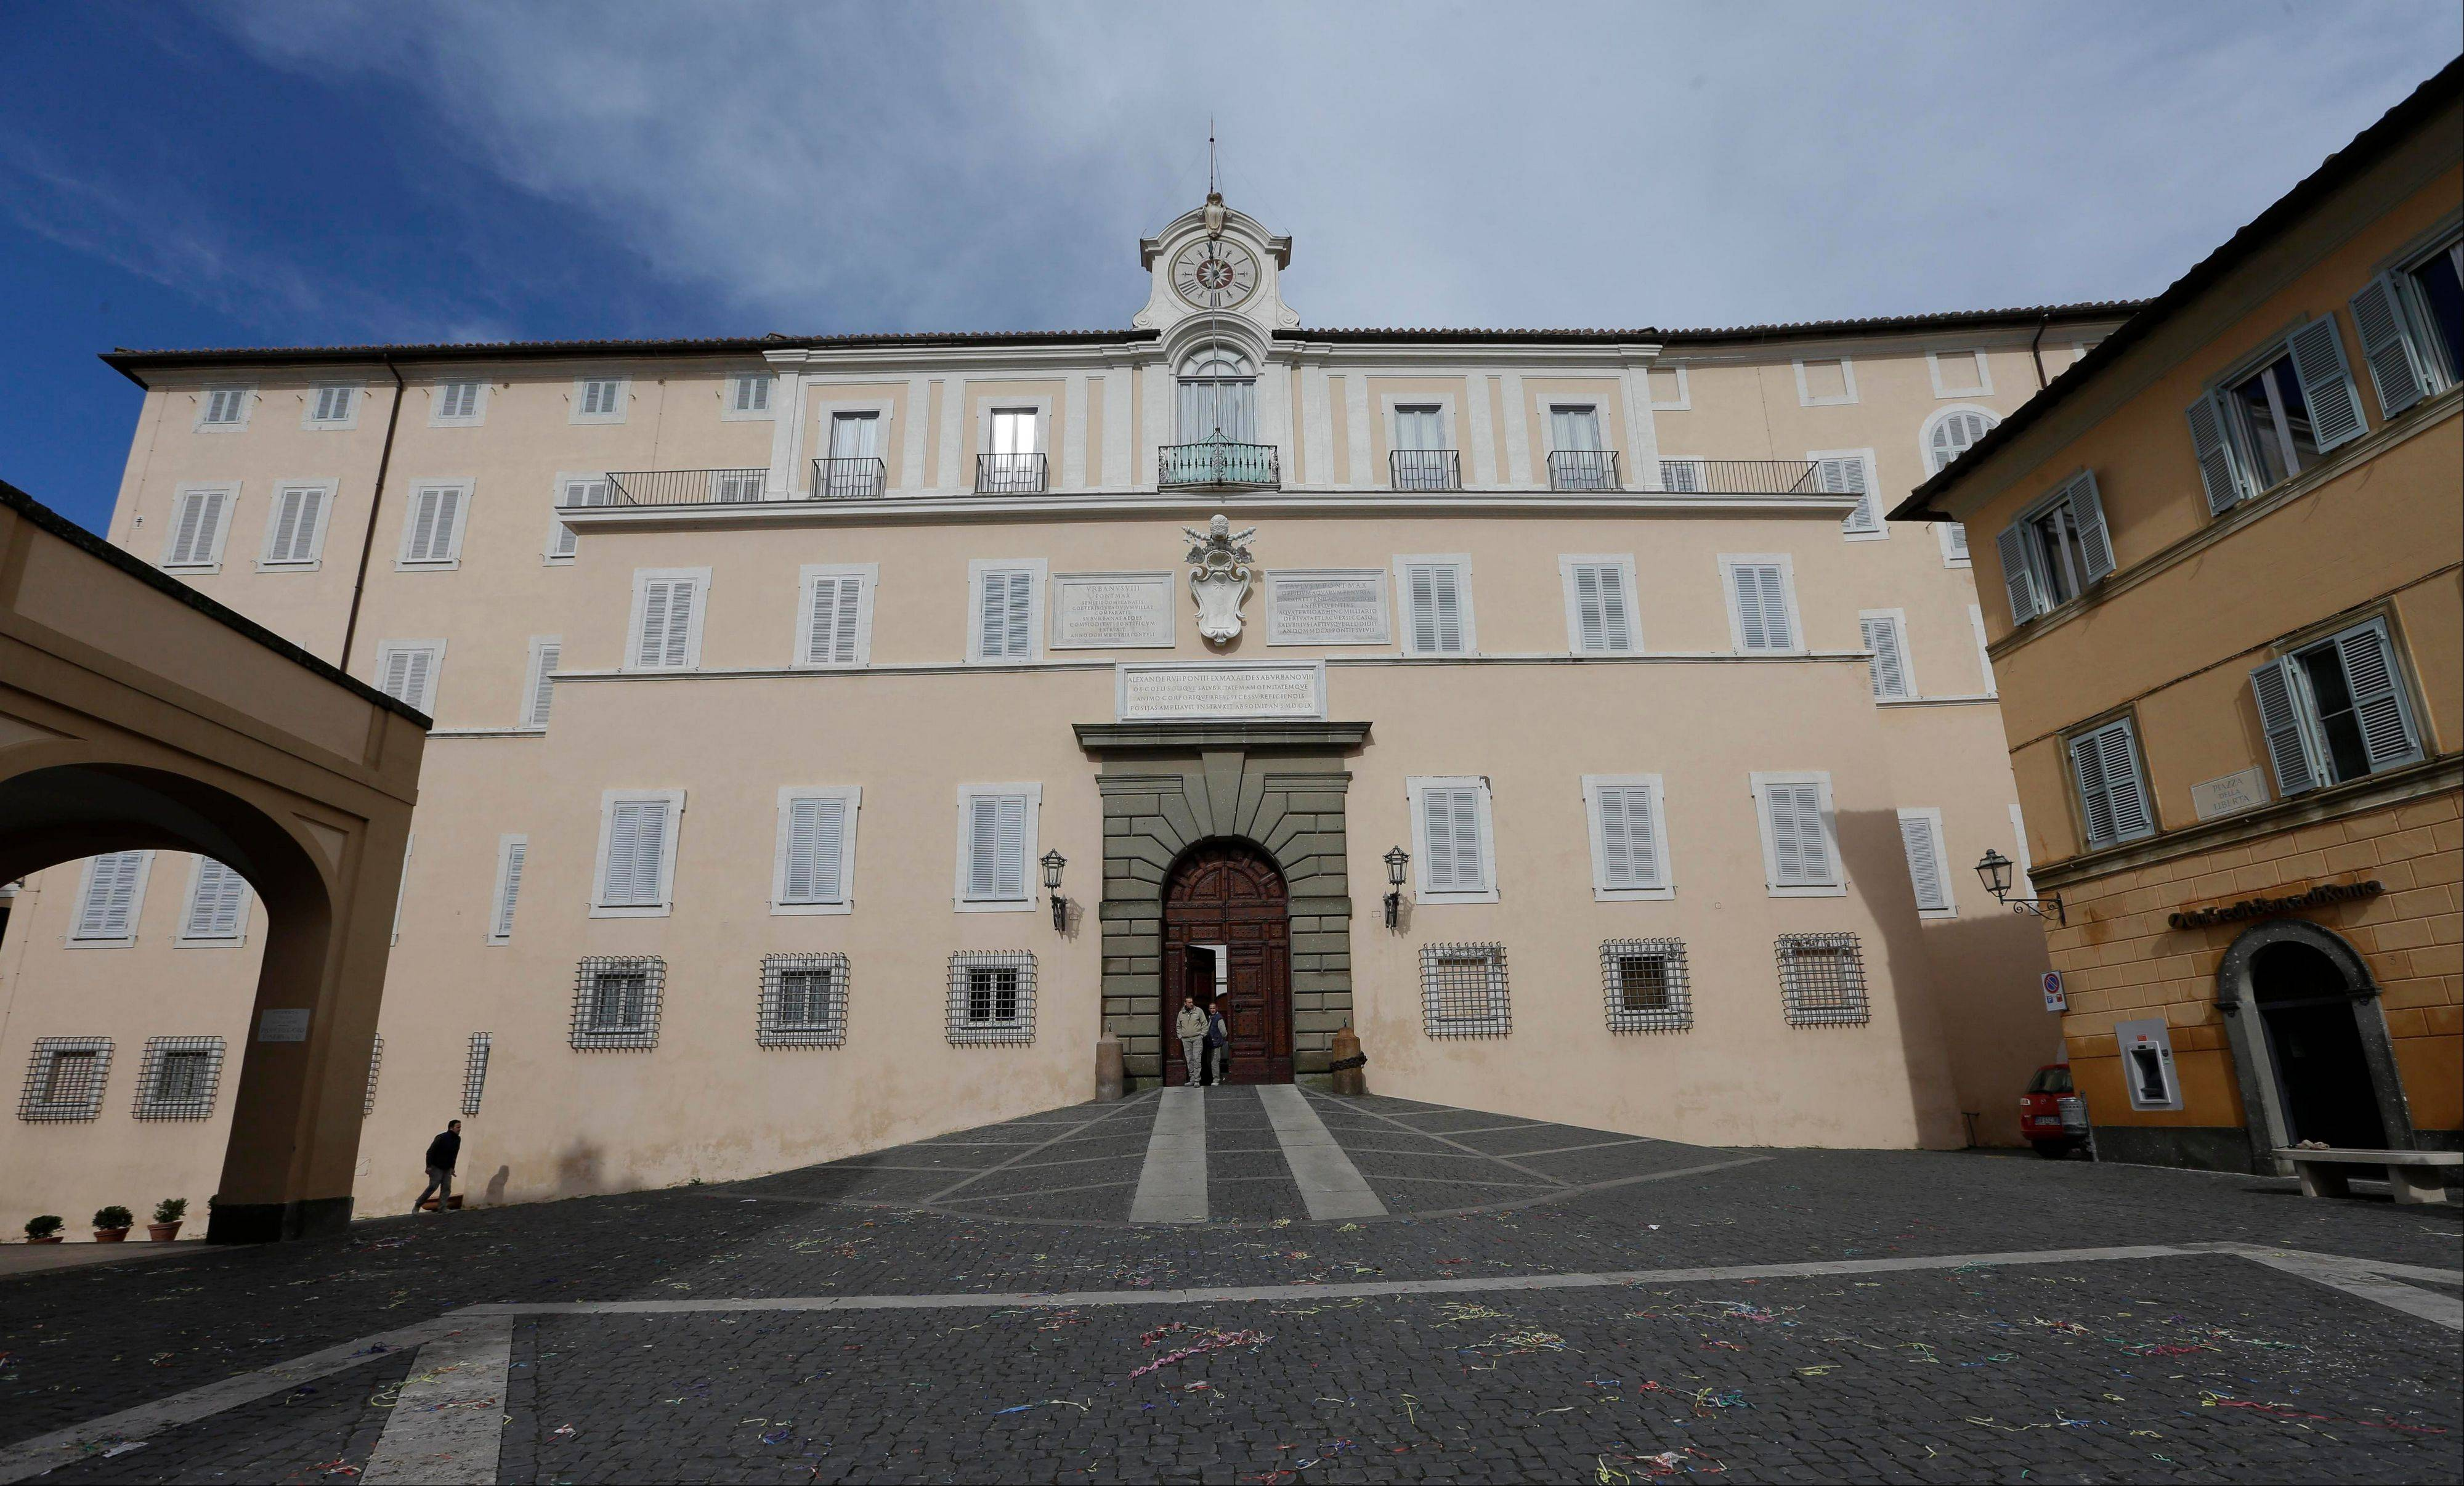 A view of the pope's summer residence of Castel Gandolfo, in the town of Castelgandolfo, south of Rome, Tuesday, Feb. 12, 2013. Immediately after his resignation on Feb. 28, 2013, Pope Benedict XVI will spend some time at the papal summer retreat in Castel Gandolfo, overlooking Lake Albano in the hills south of Rome where he has spent his summer vacations reading and writing.